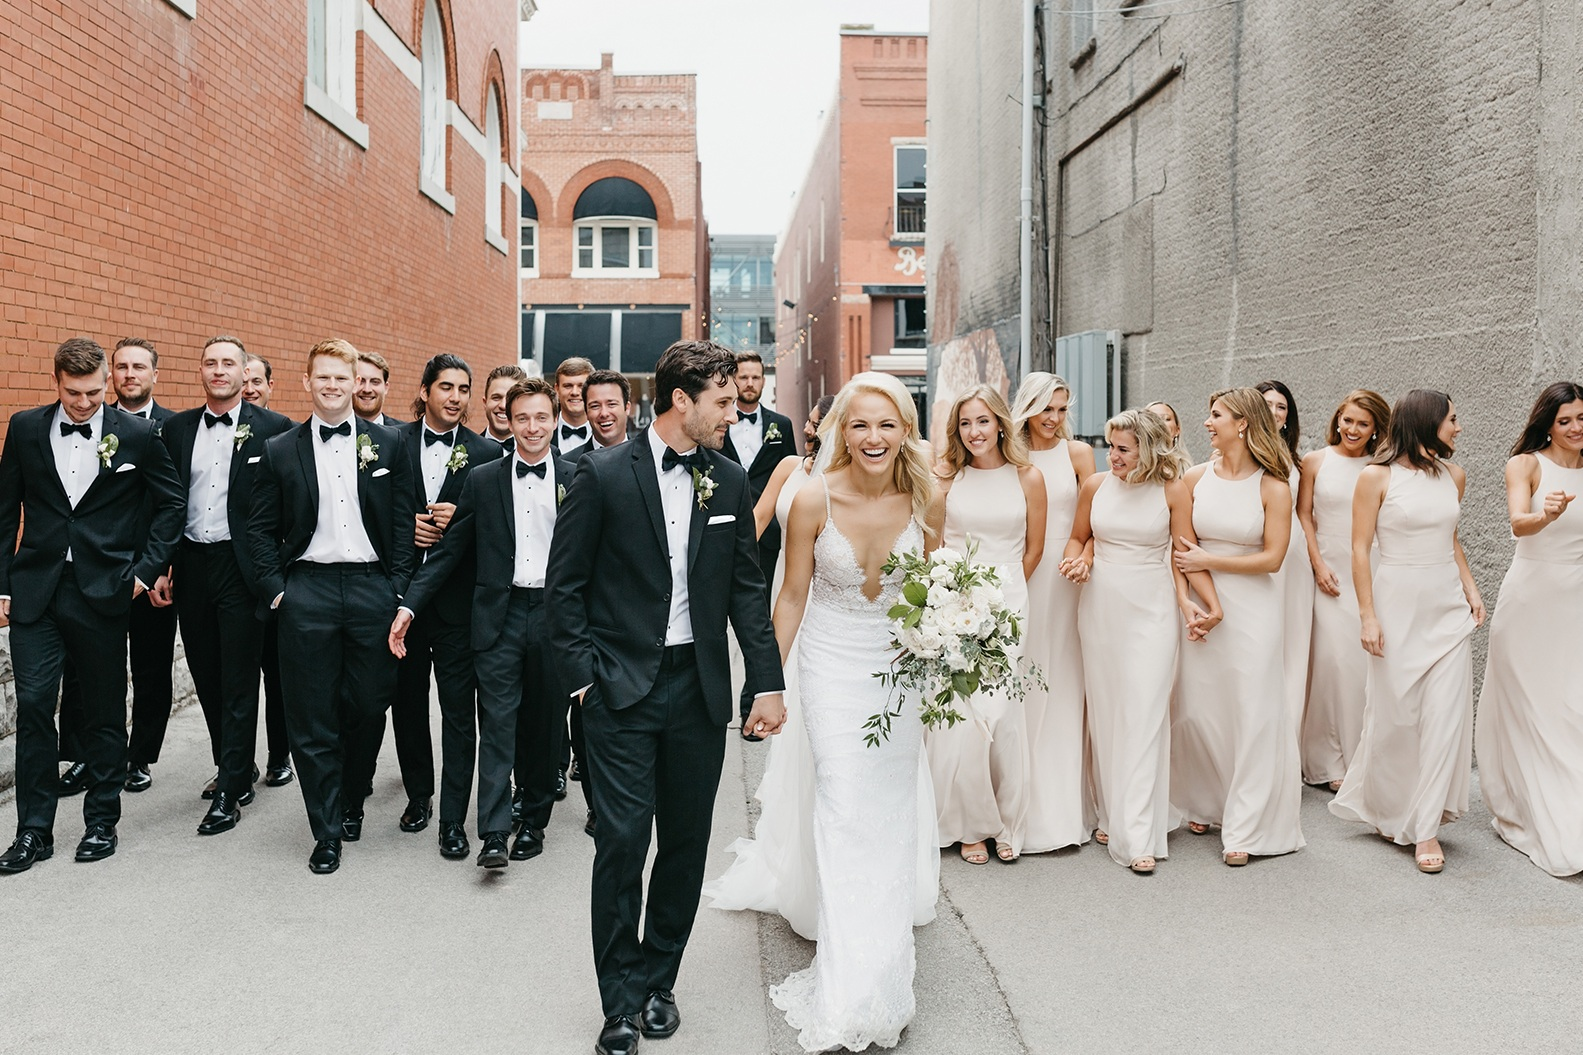 Wedding Party Specials - We know being in a wedding can get expensive, so Tuxedos by American Male has created special deals for our wedding parties!The Groom's Rental is FREE with the booking of 5 additional tuxes for the wedding party.Every groomsmen, father, or usher will receive $40 off of their total tuxedo rental.Ring Bearer specials also available- see store for details!